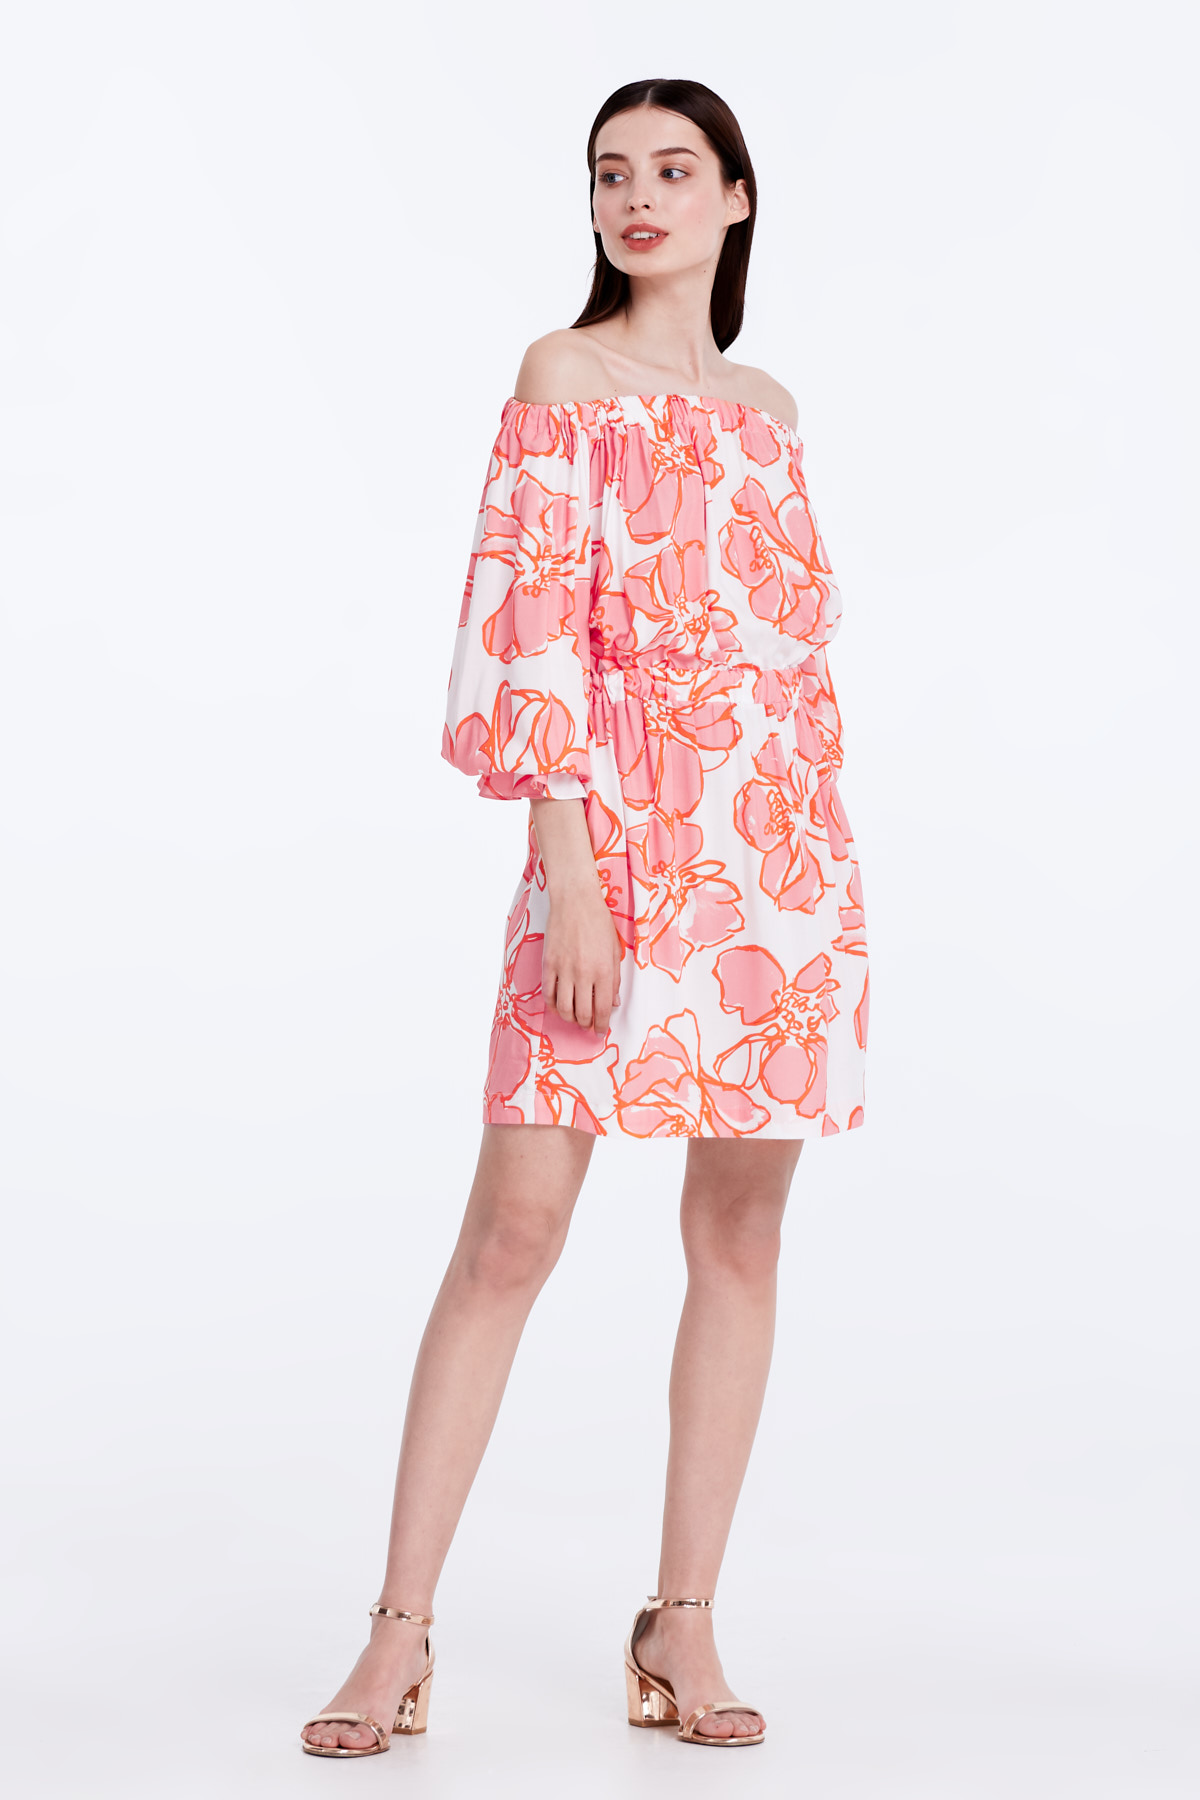 2056ed2c37d1 Off-shoulder white dress with a floral print photo 5 - MustHave online store